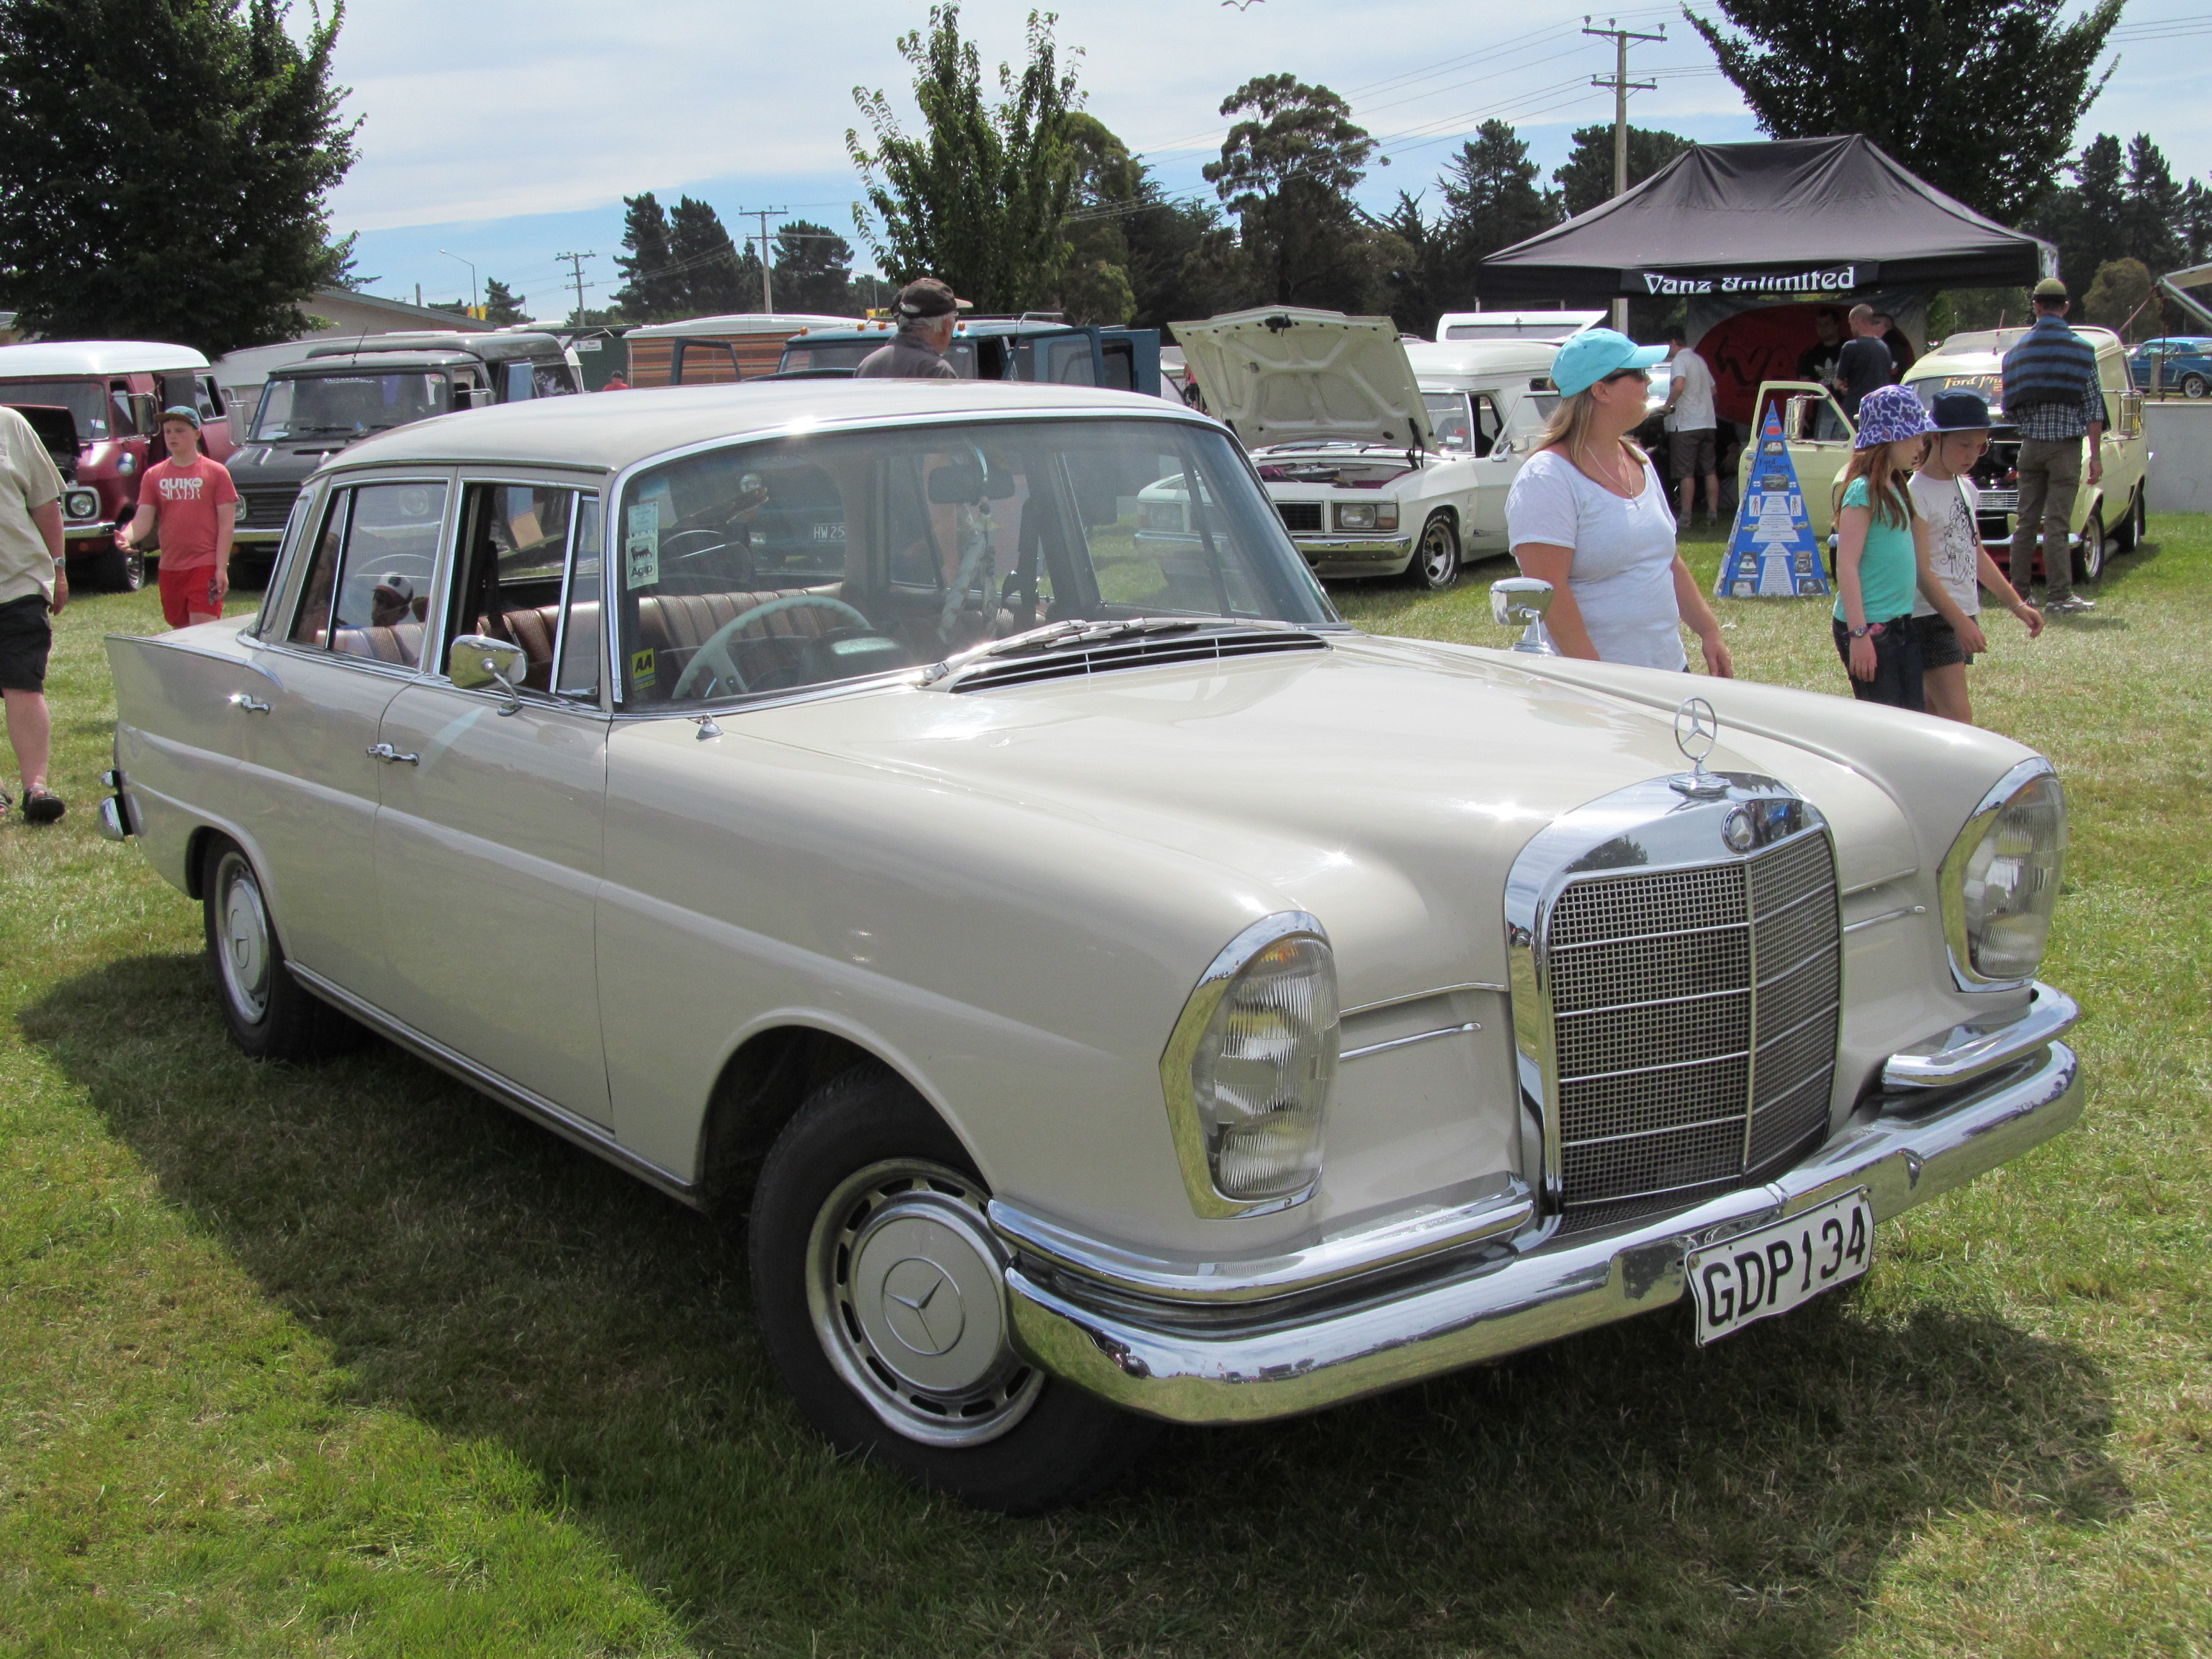 New Car Designs >> File:1967 Mercedes-Benz 230S (12495513813).jpg - Wikimedia Commons